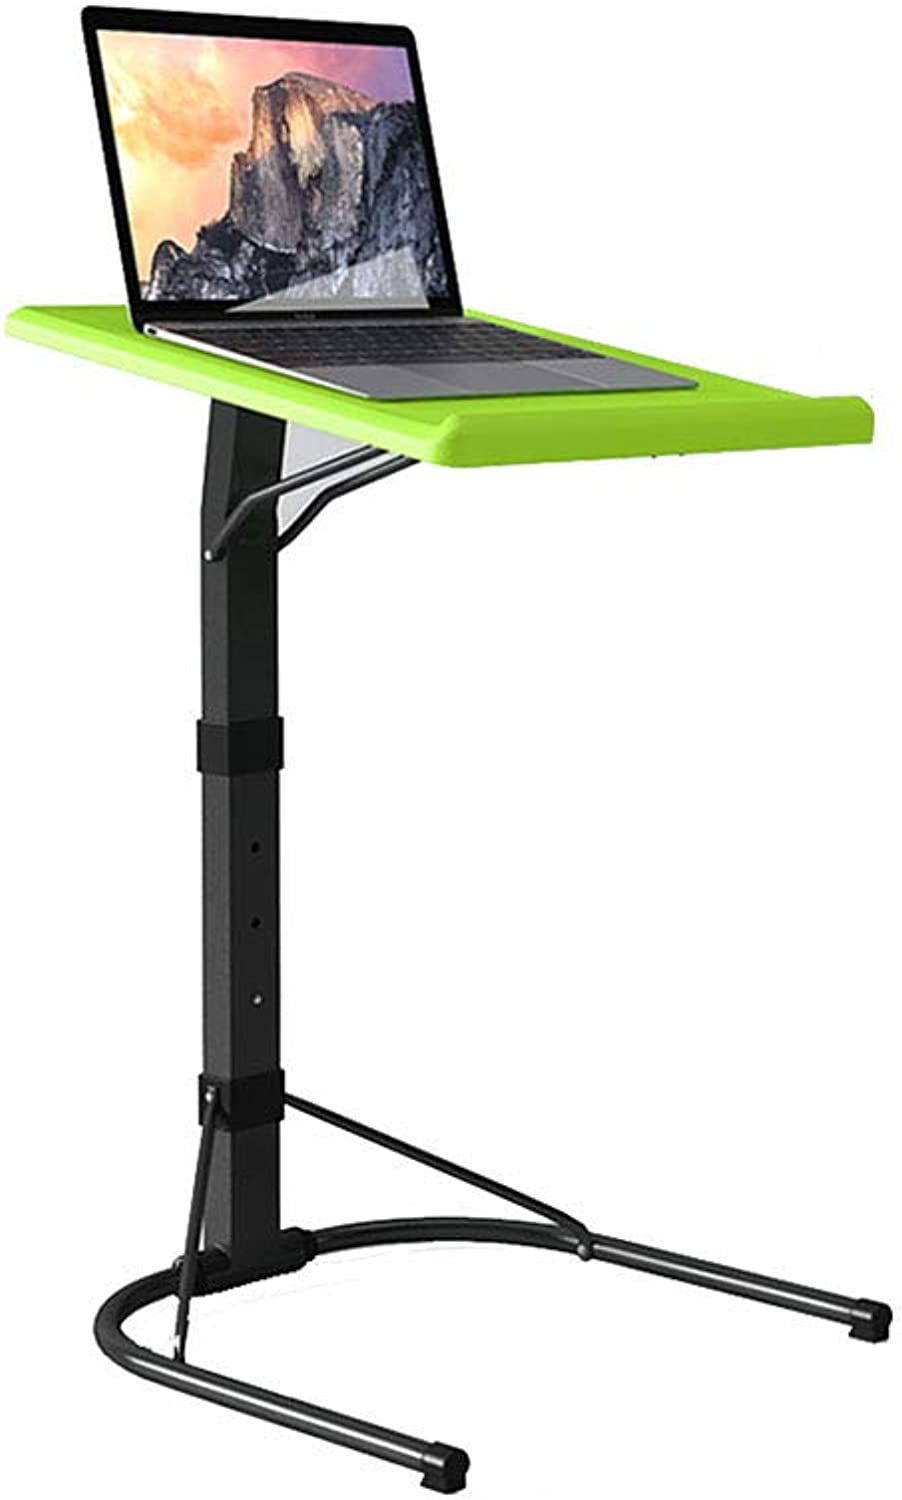 Djyyh Bed Lazy Table Laptop Table Folding Lift Removable Desk Sofa Table Bedside Table Adjustable Height and Table Angle